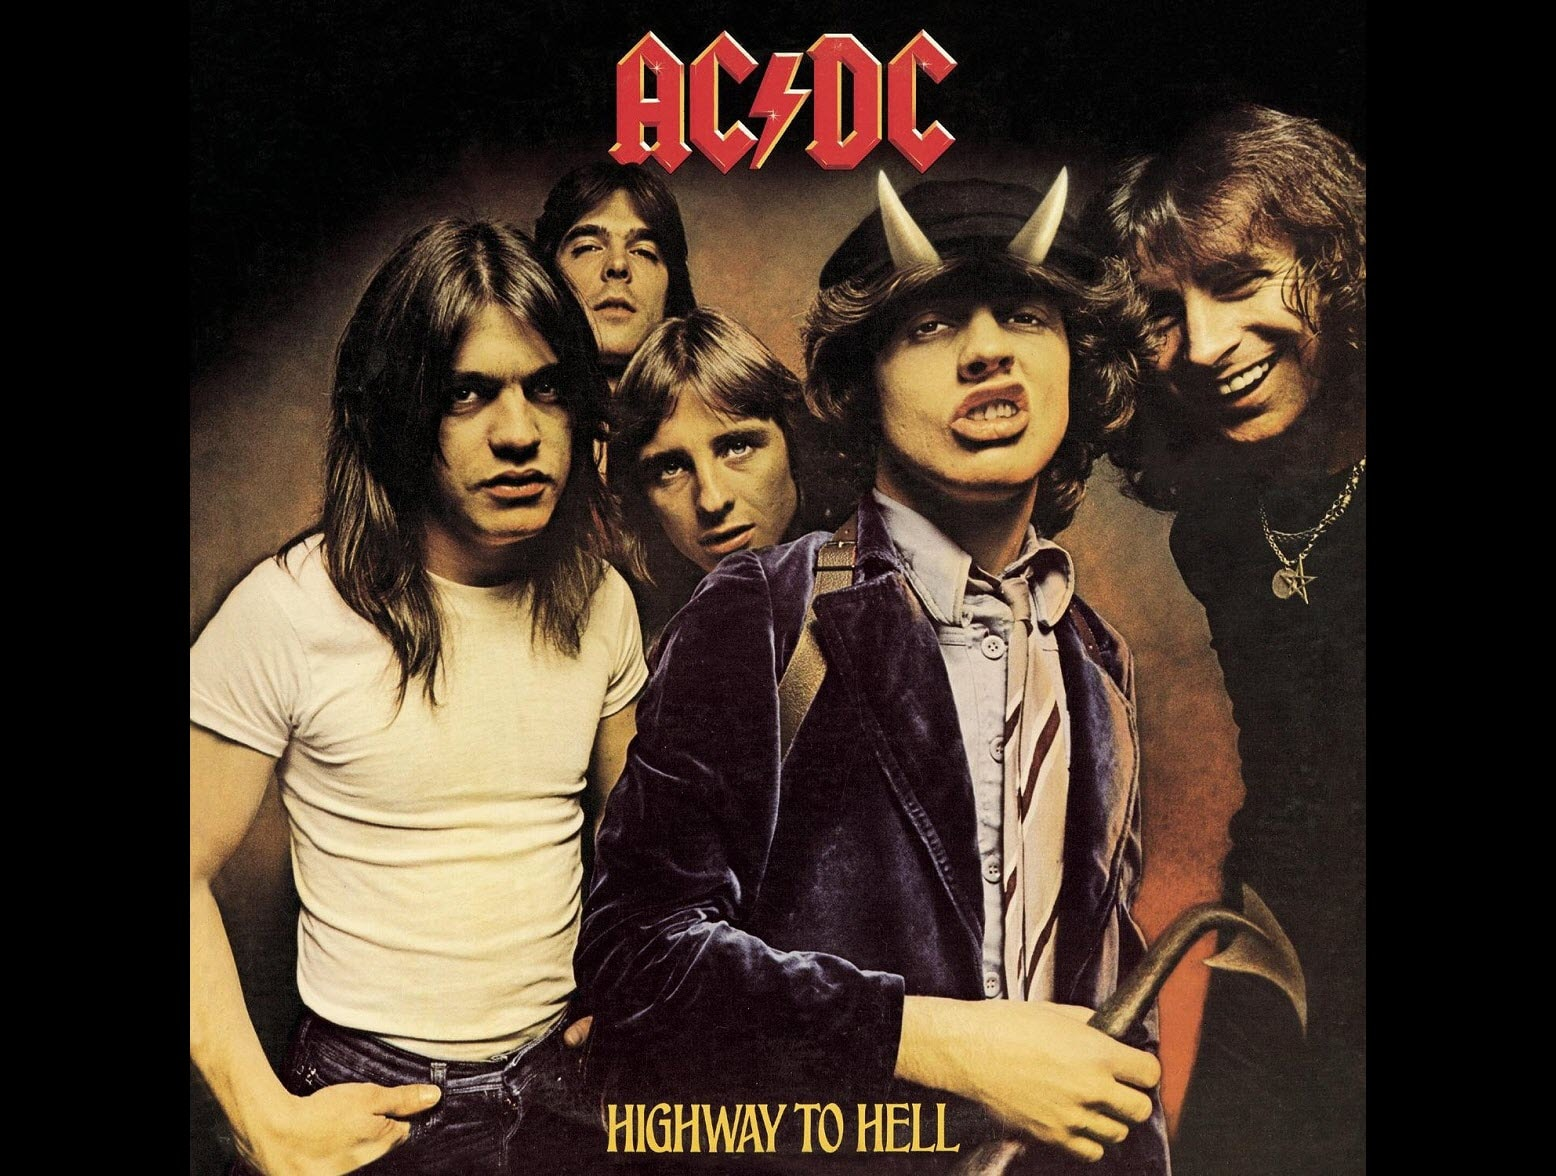 Highway to Hell': Every Song Ranked